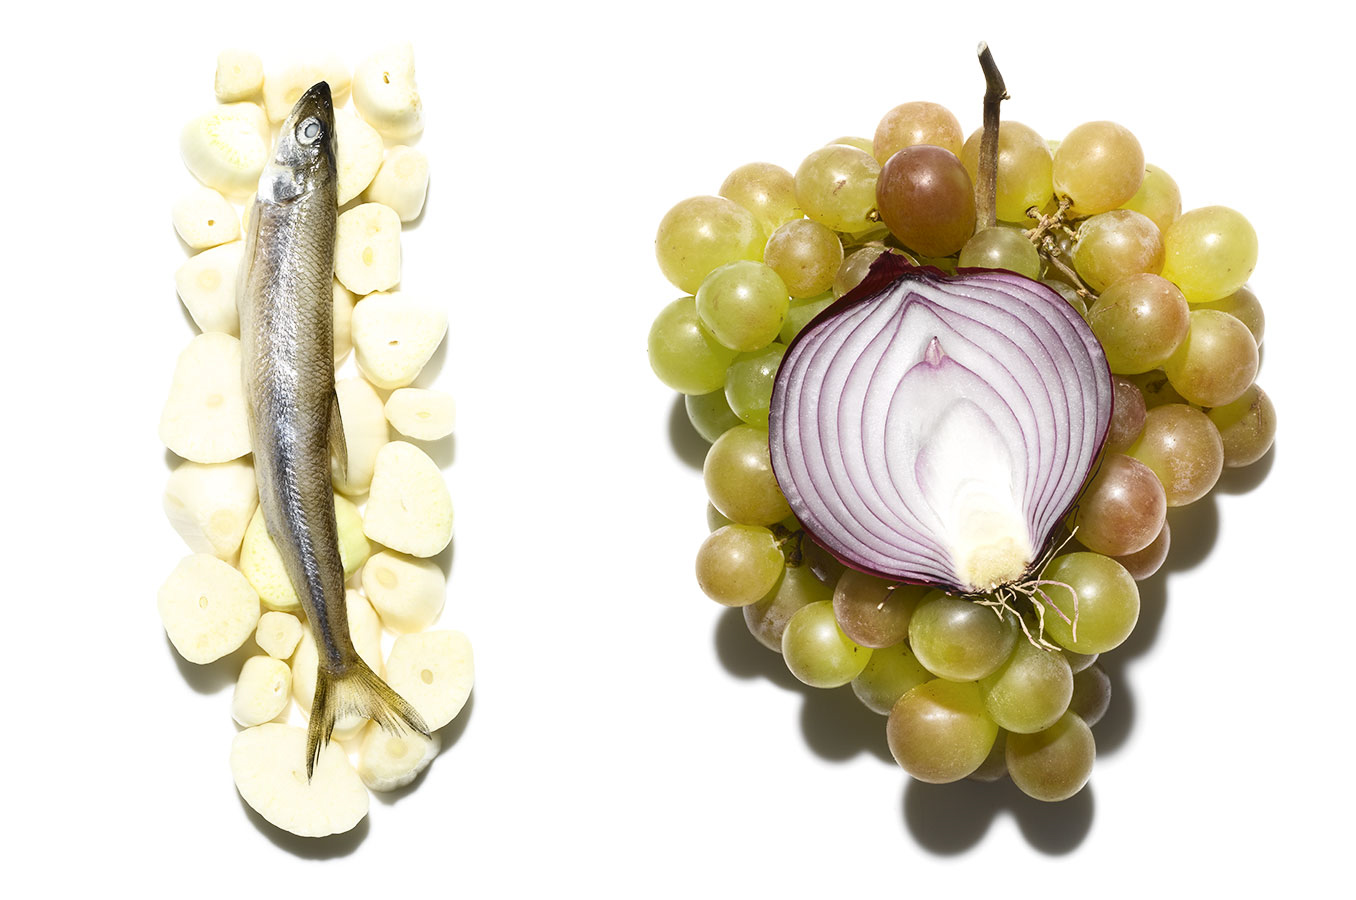 Onion Grape Anchovies